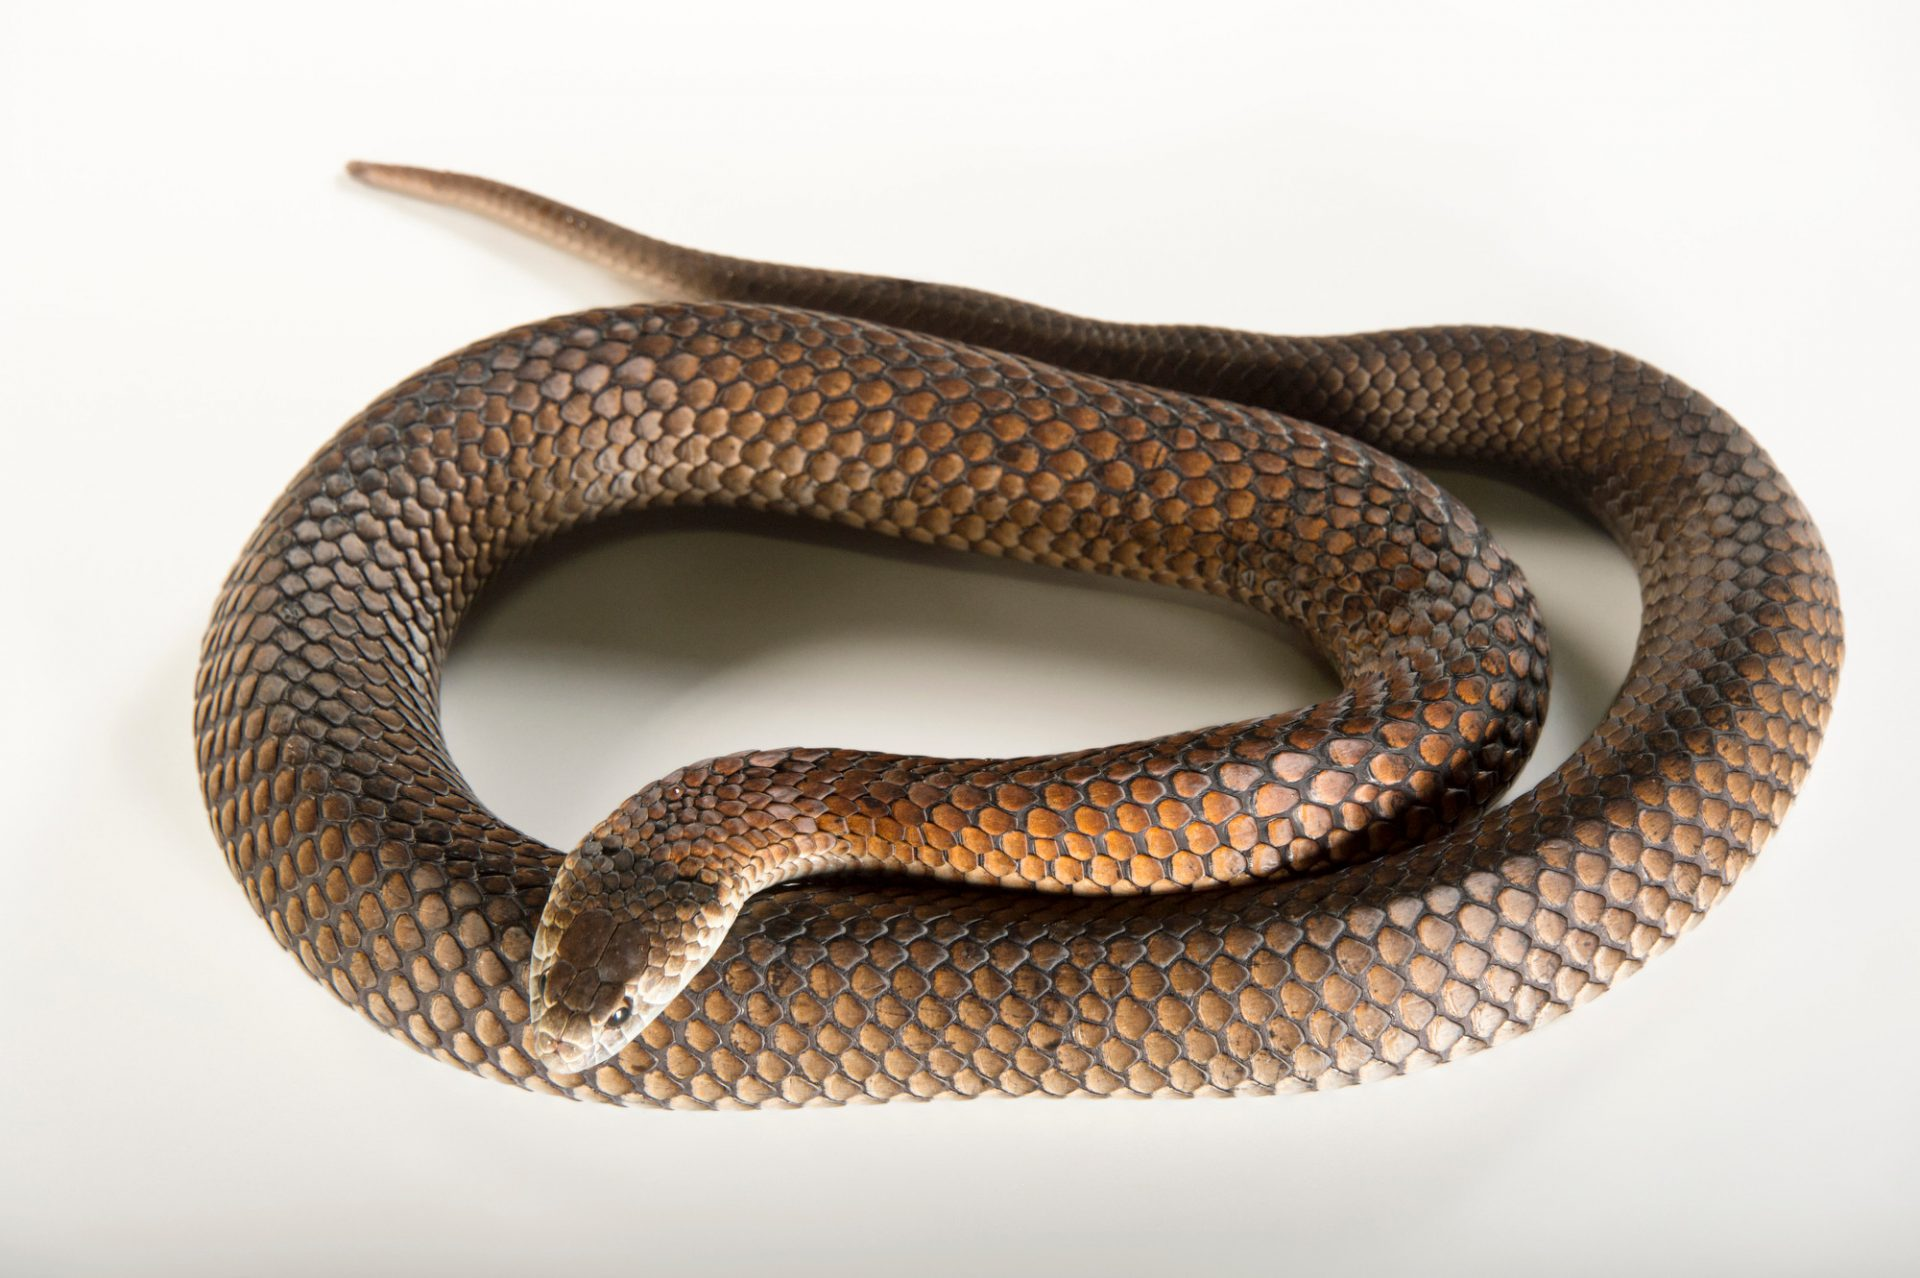 Picture of a lowland copperhead (Austrelaps superbus) at the Healesville Sanctuary.